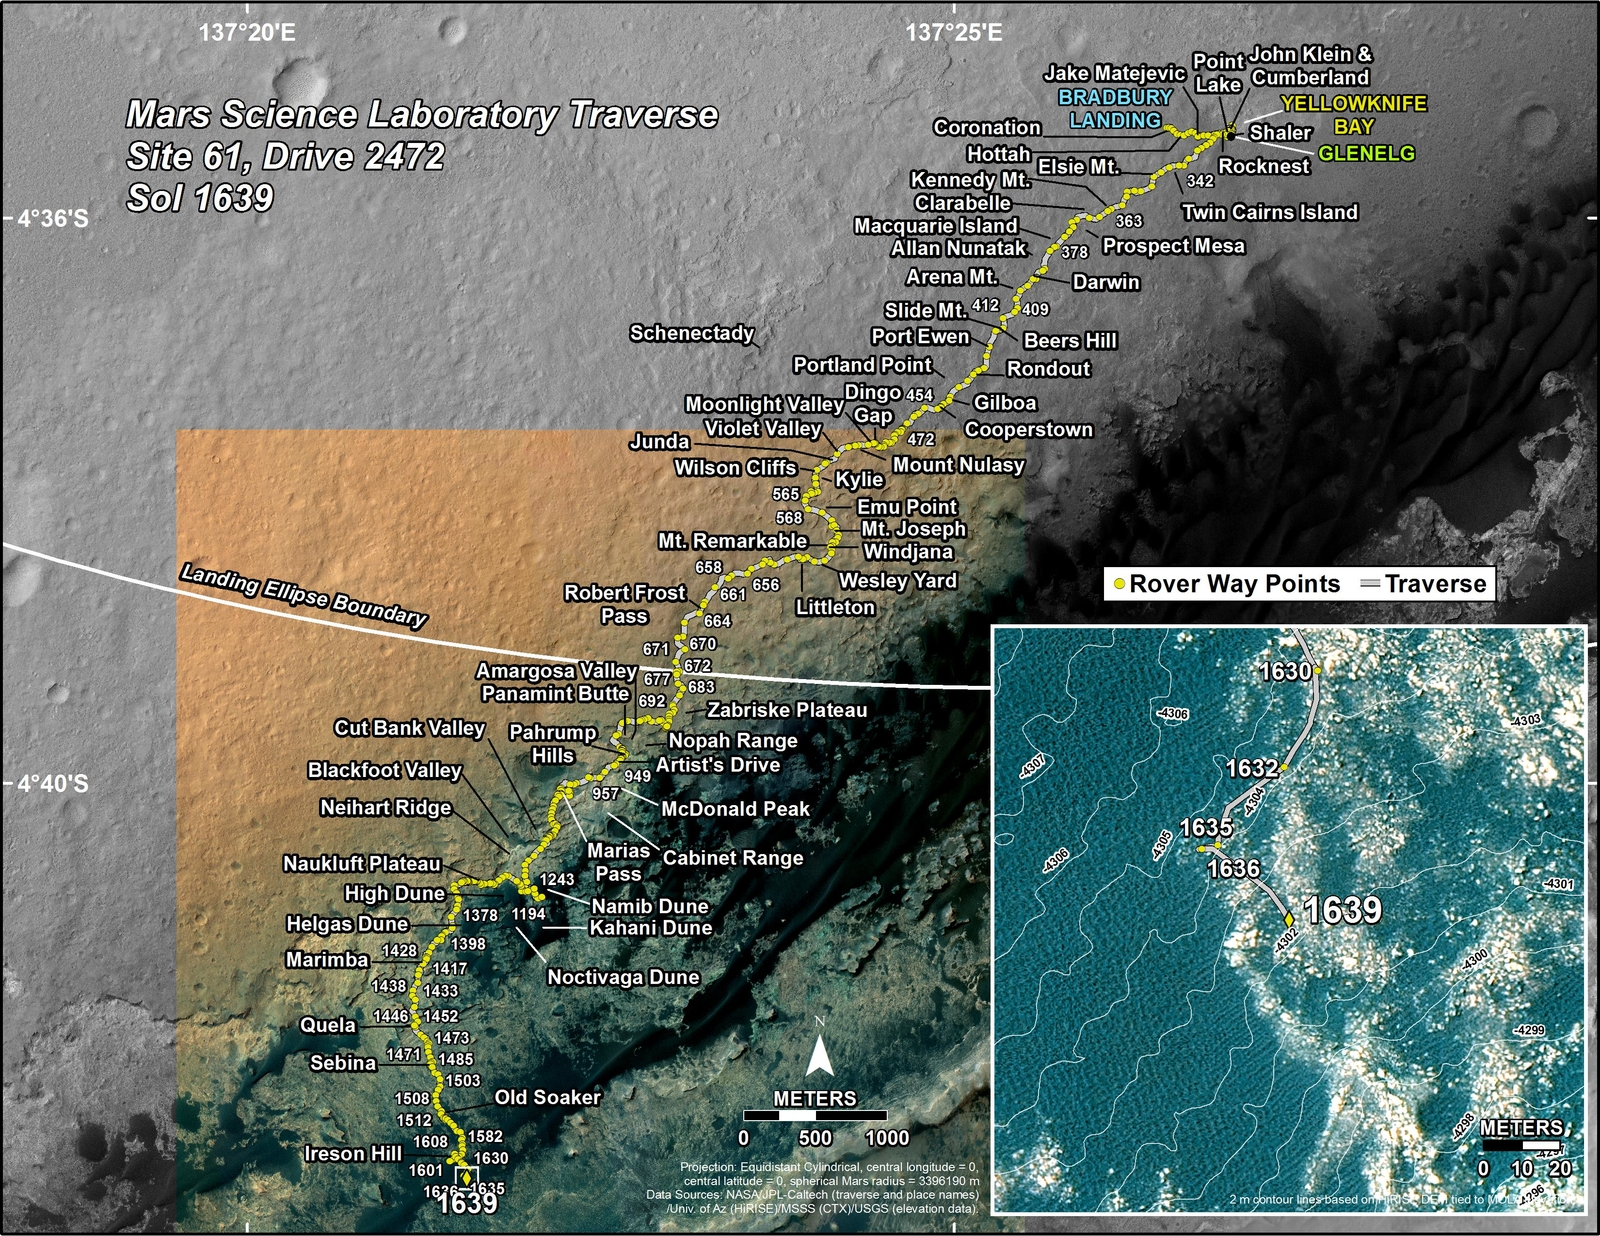 This map shows the route driven by NASA's Mars rover Curiosity through the 1639 Martian day, or sol, of the rover's mission on Mars (March 17, 2017).